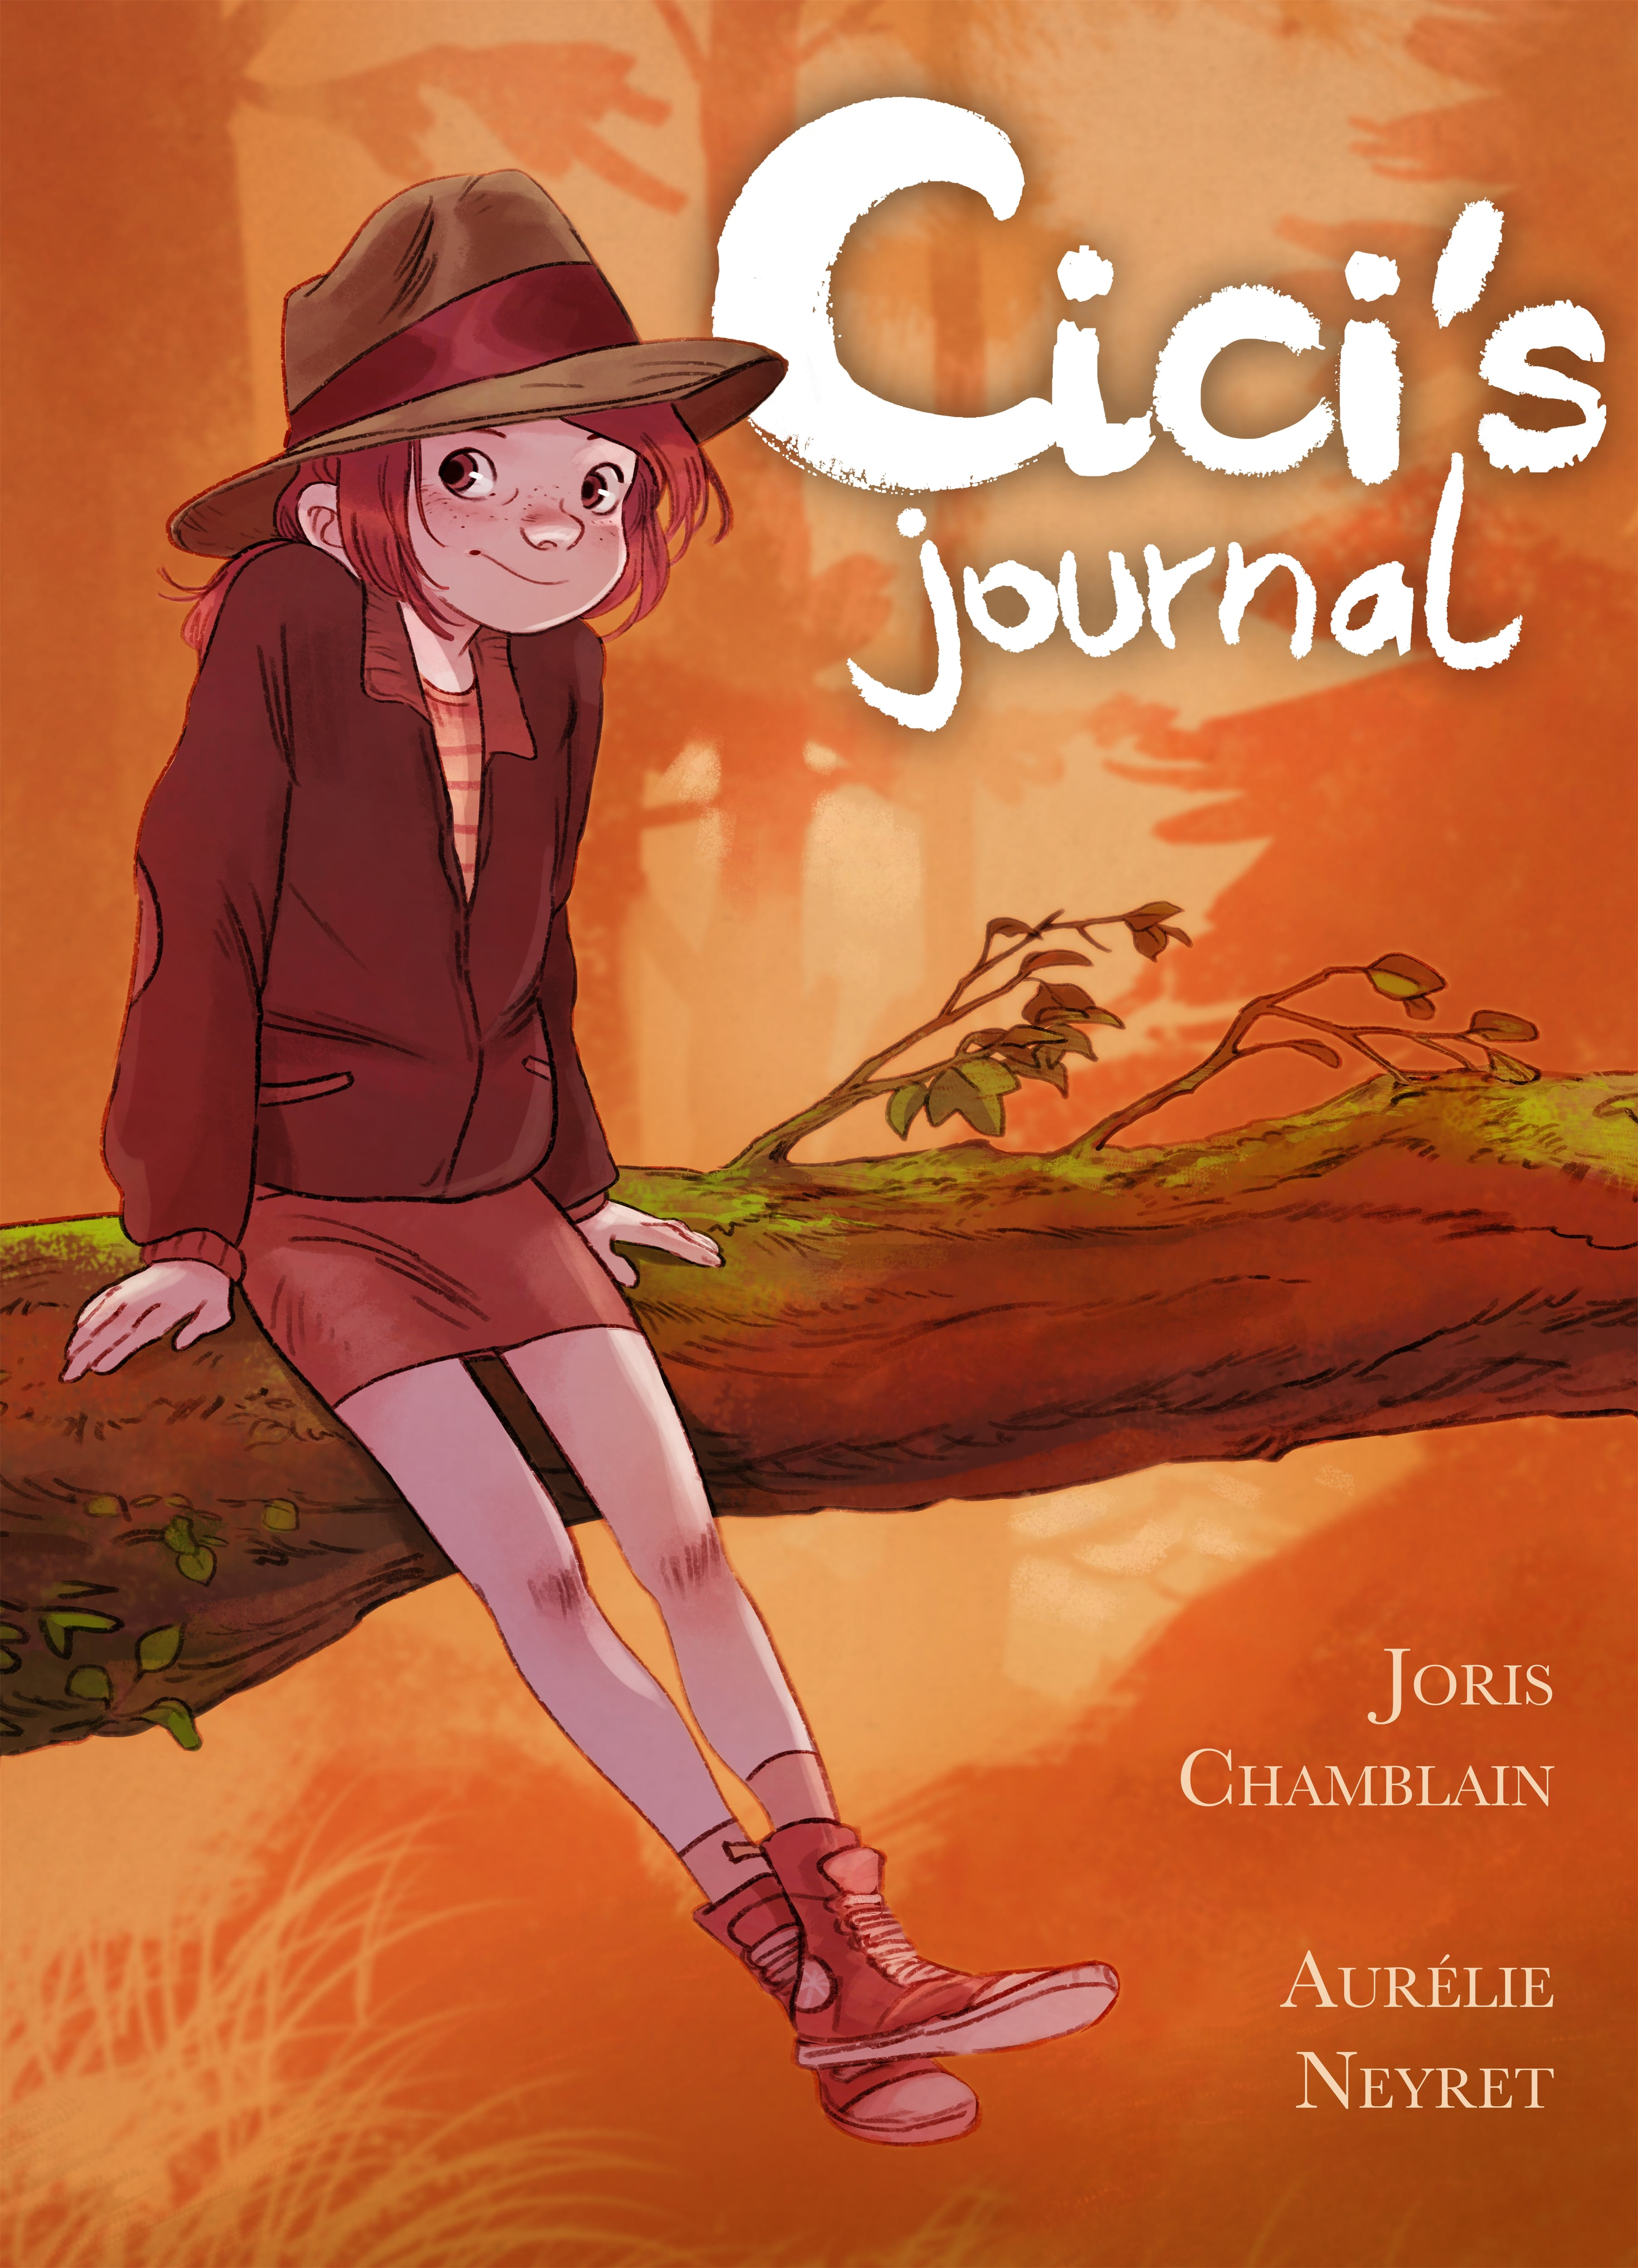 Image of Cici's Journal